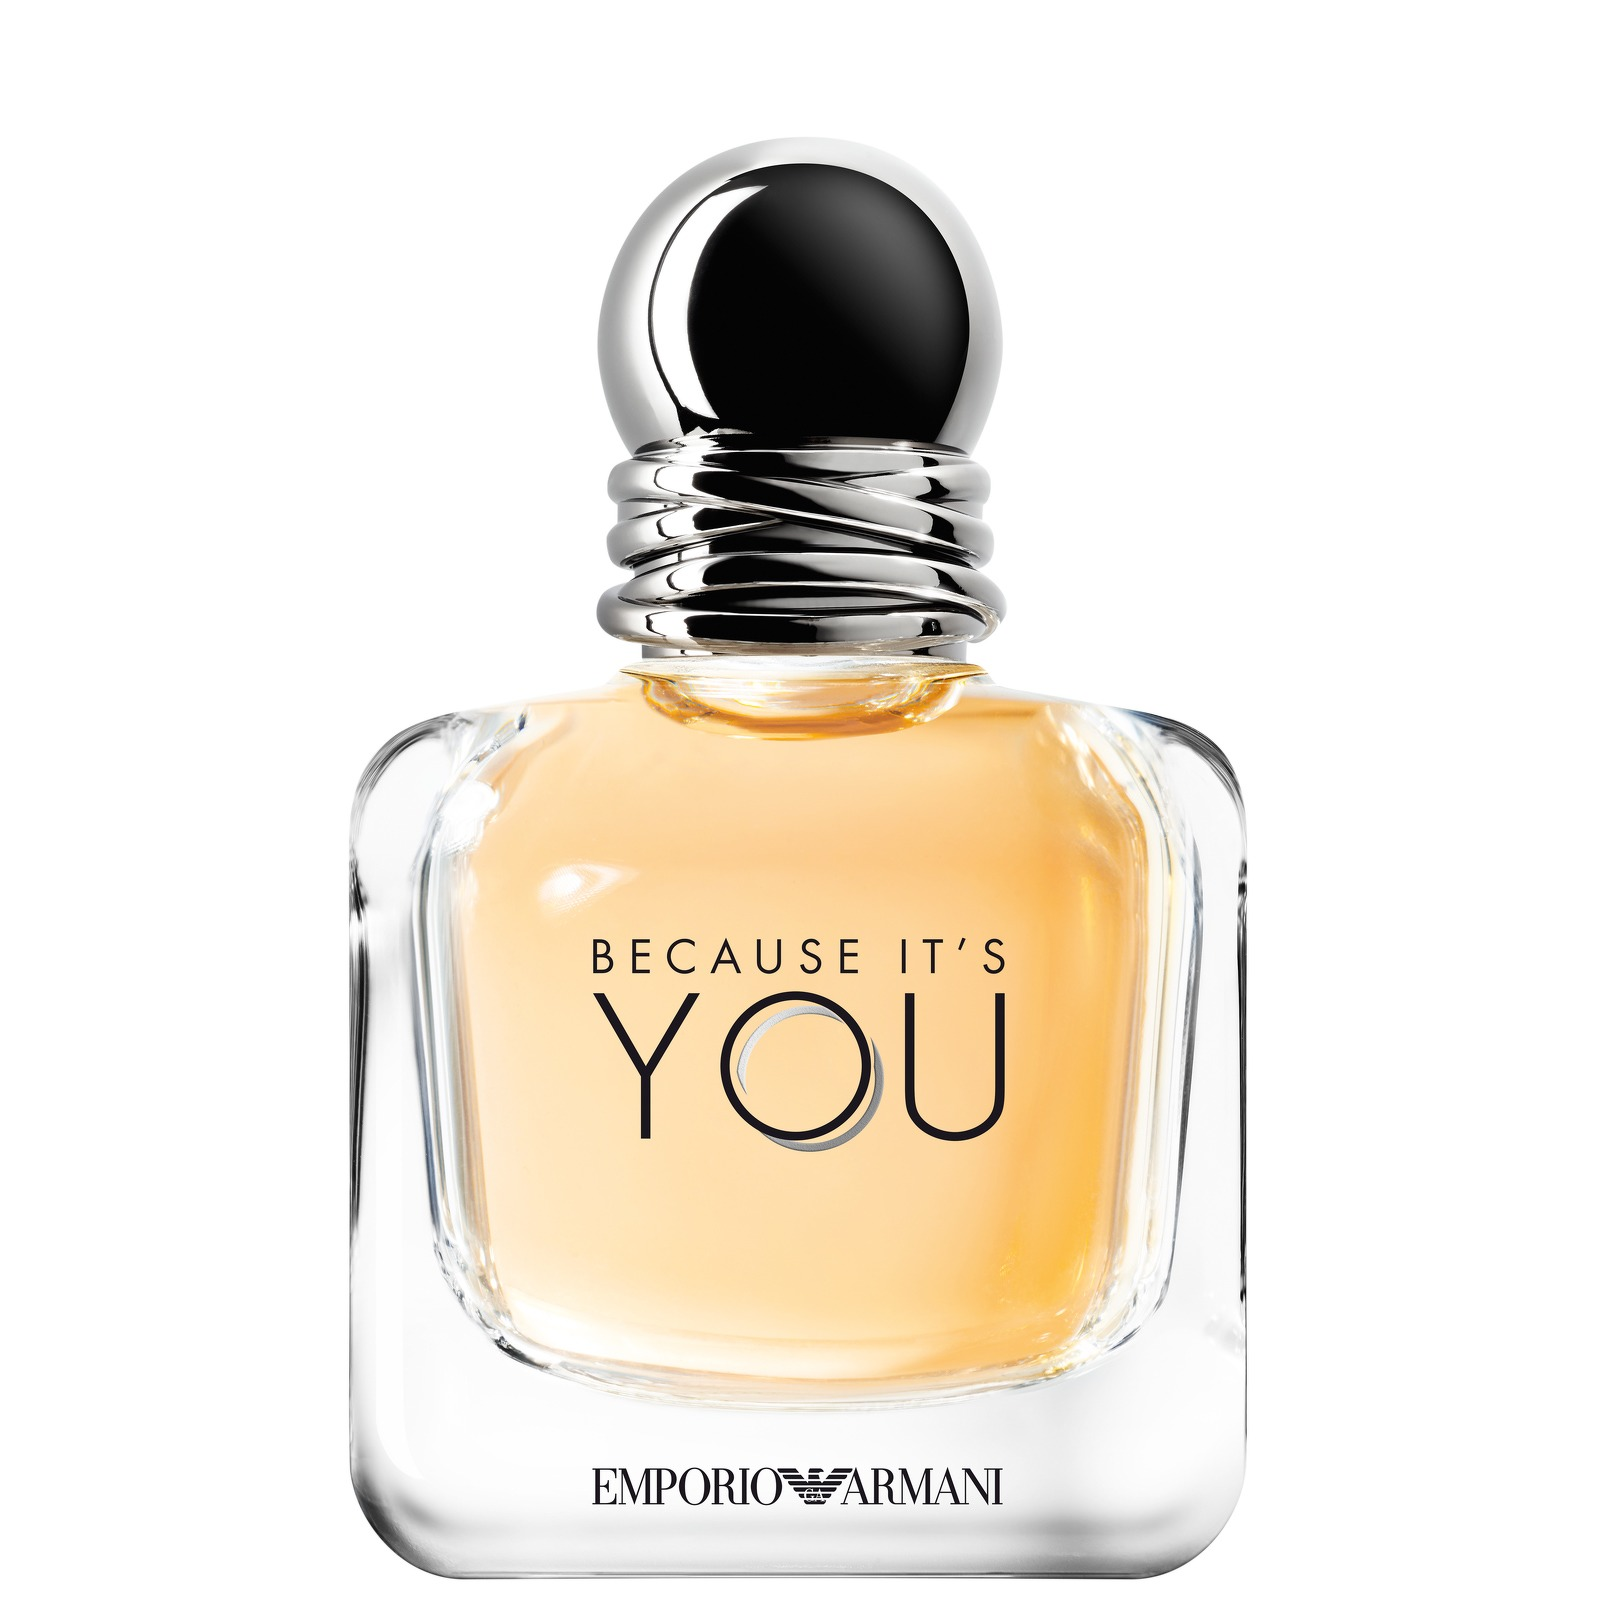 Armani Because It's You Eau de Parfum Spray 50ml